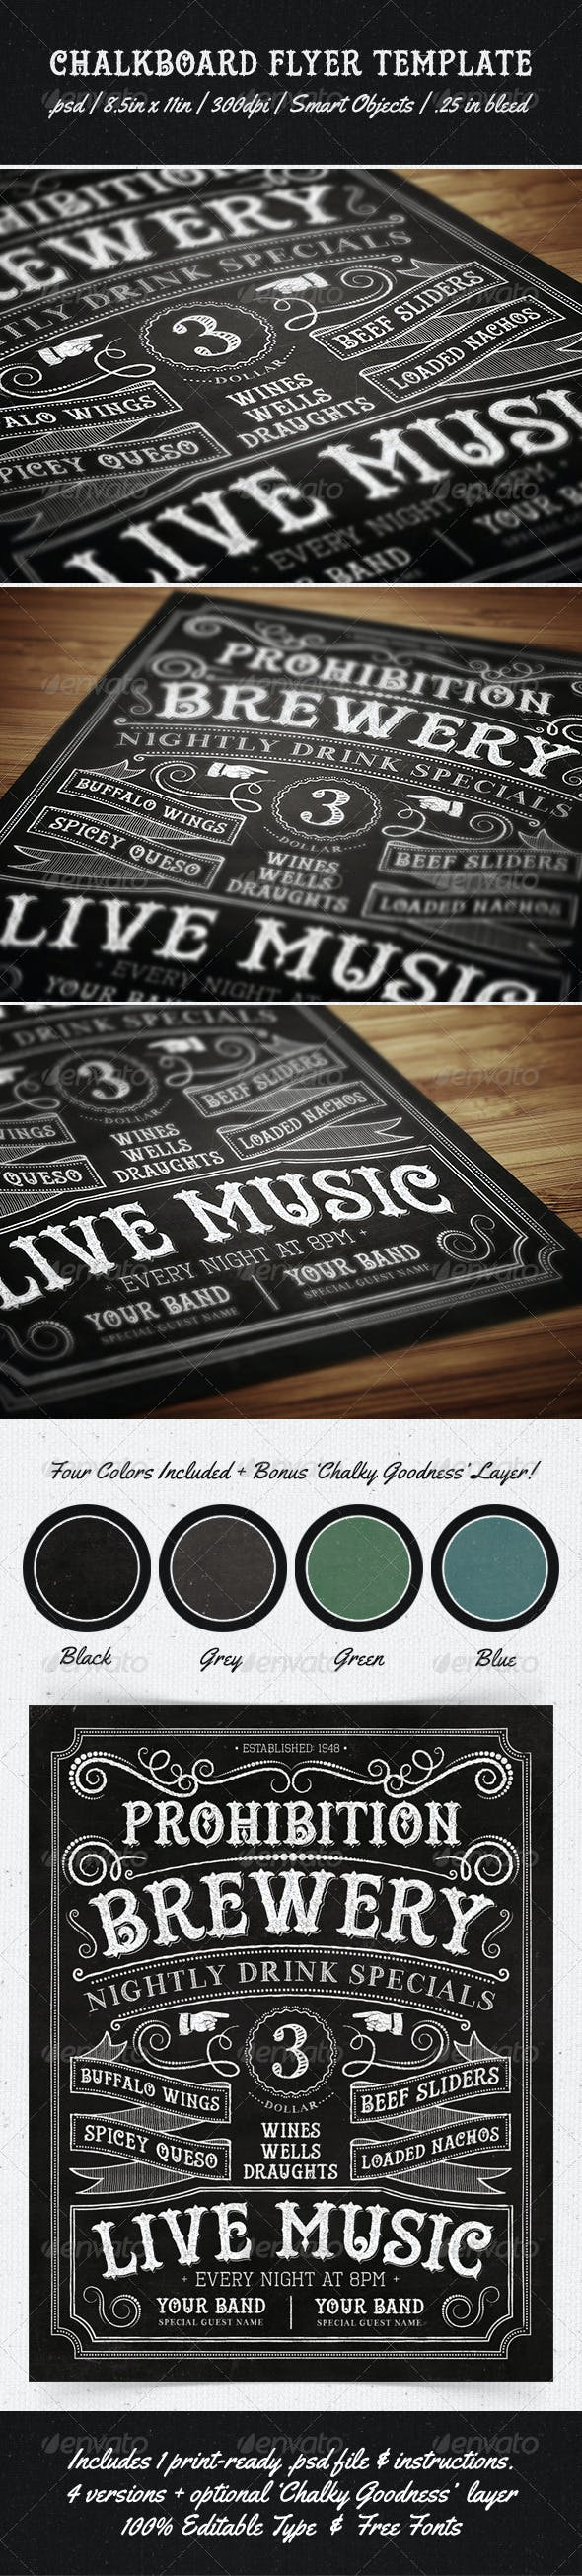 chalkboard flyer template by makemediaco graphicriver